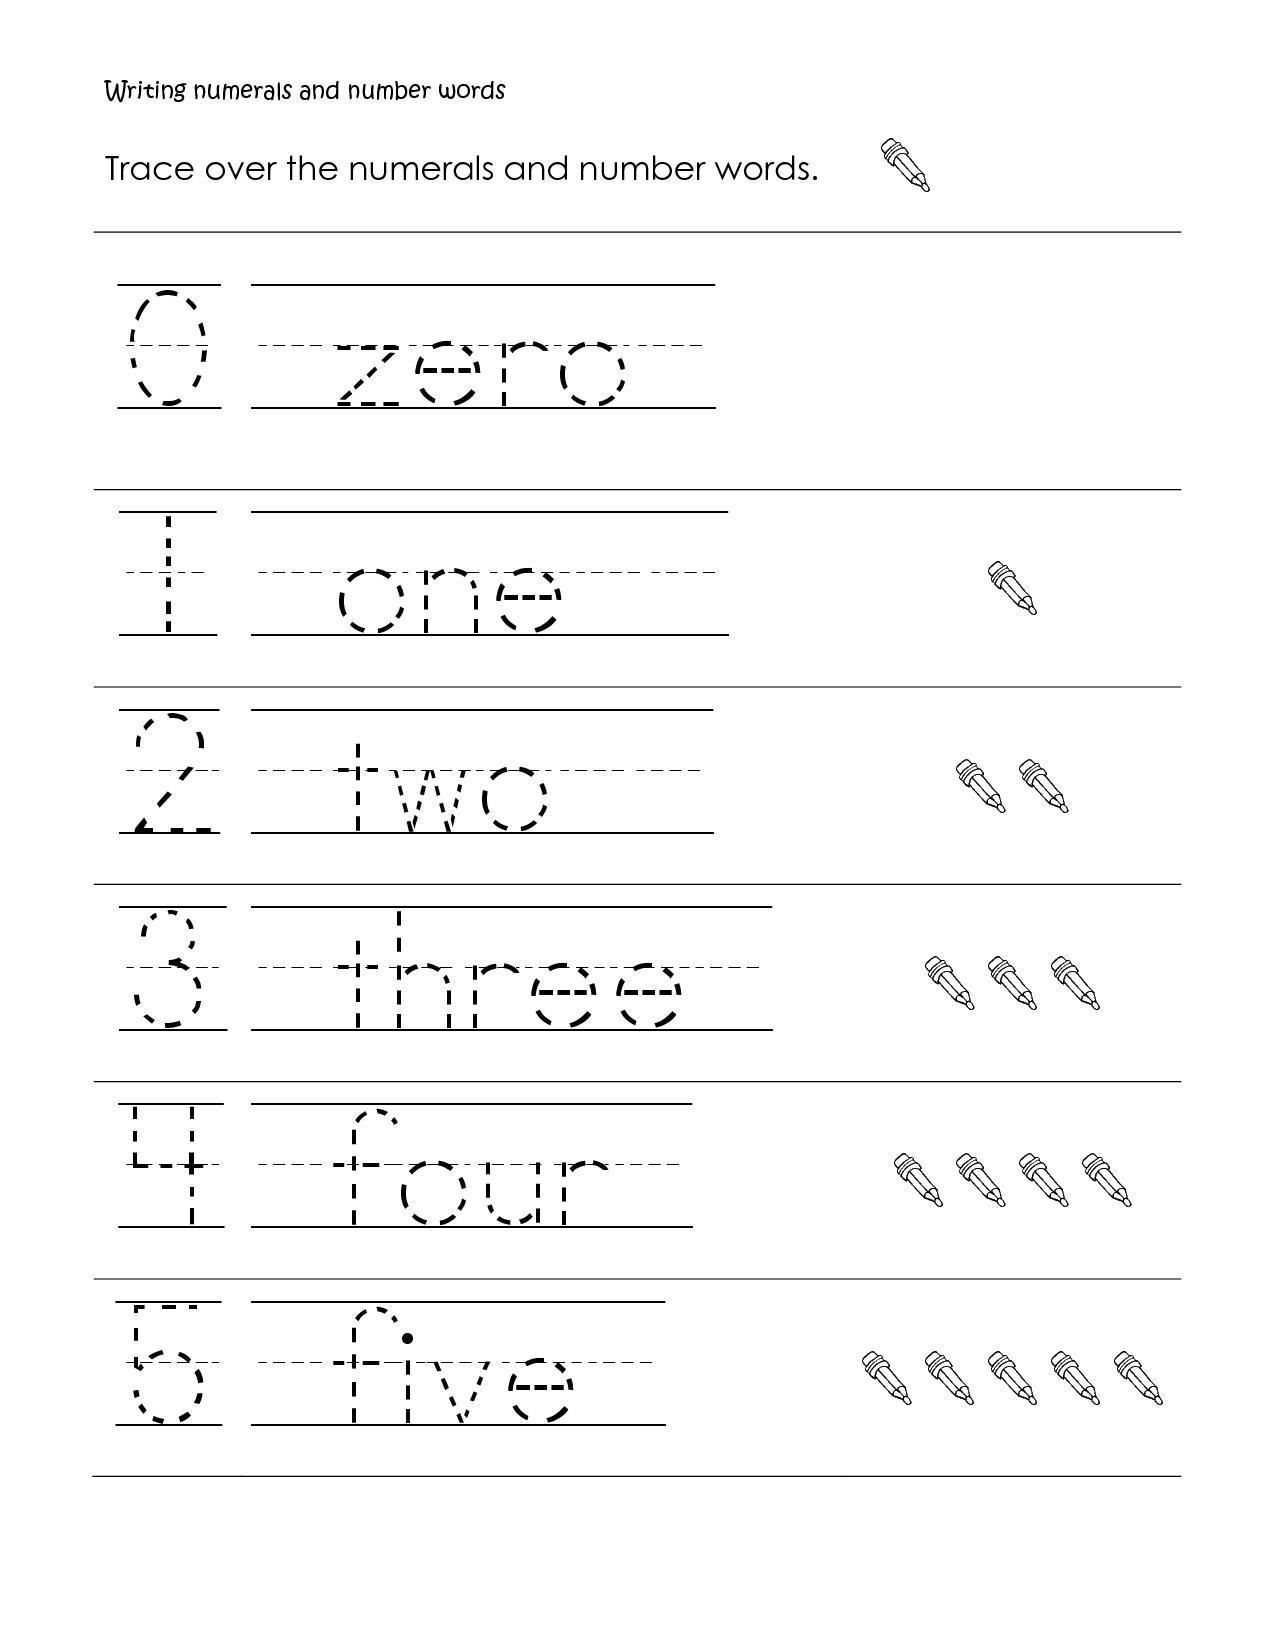 Word Tracing Worksheets For Kindergarten 1 In